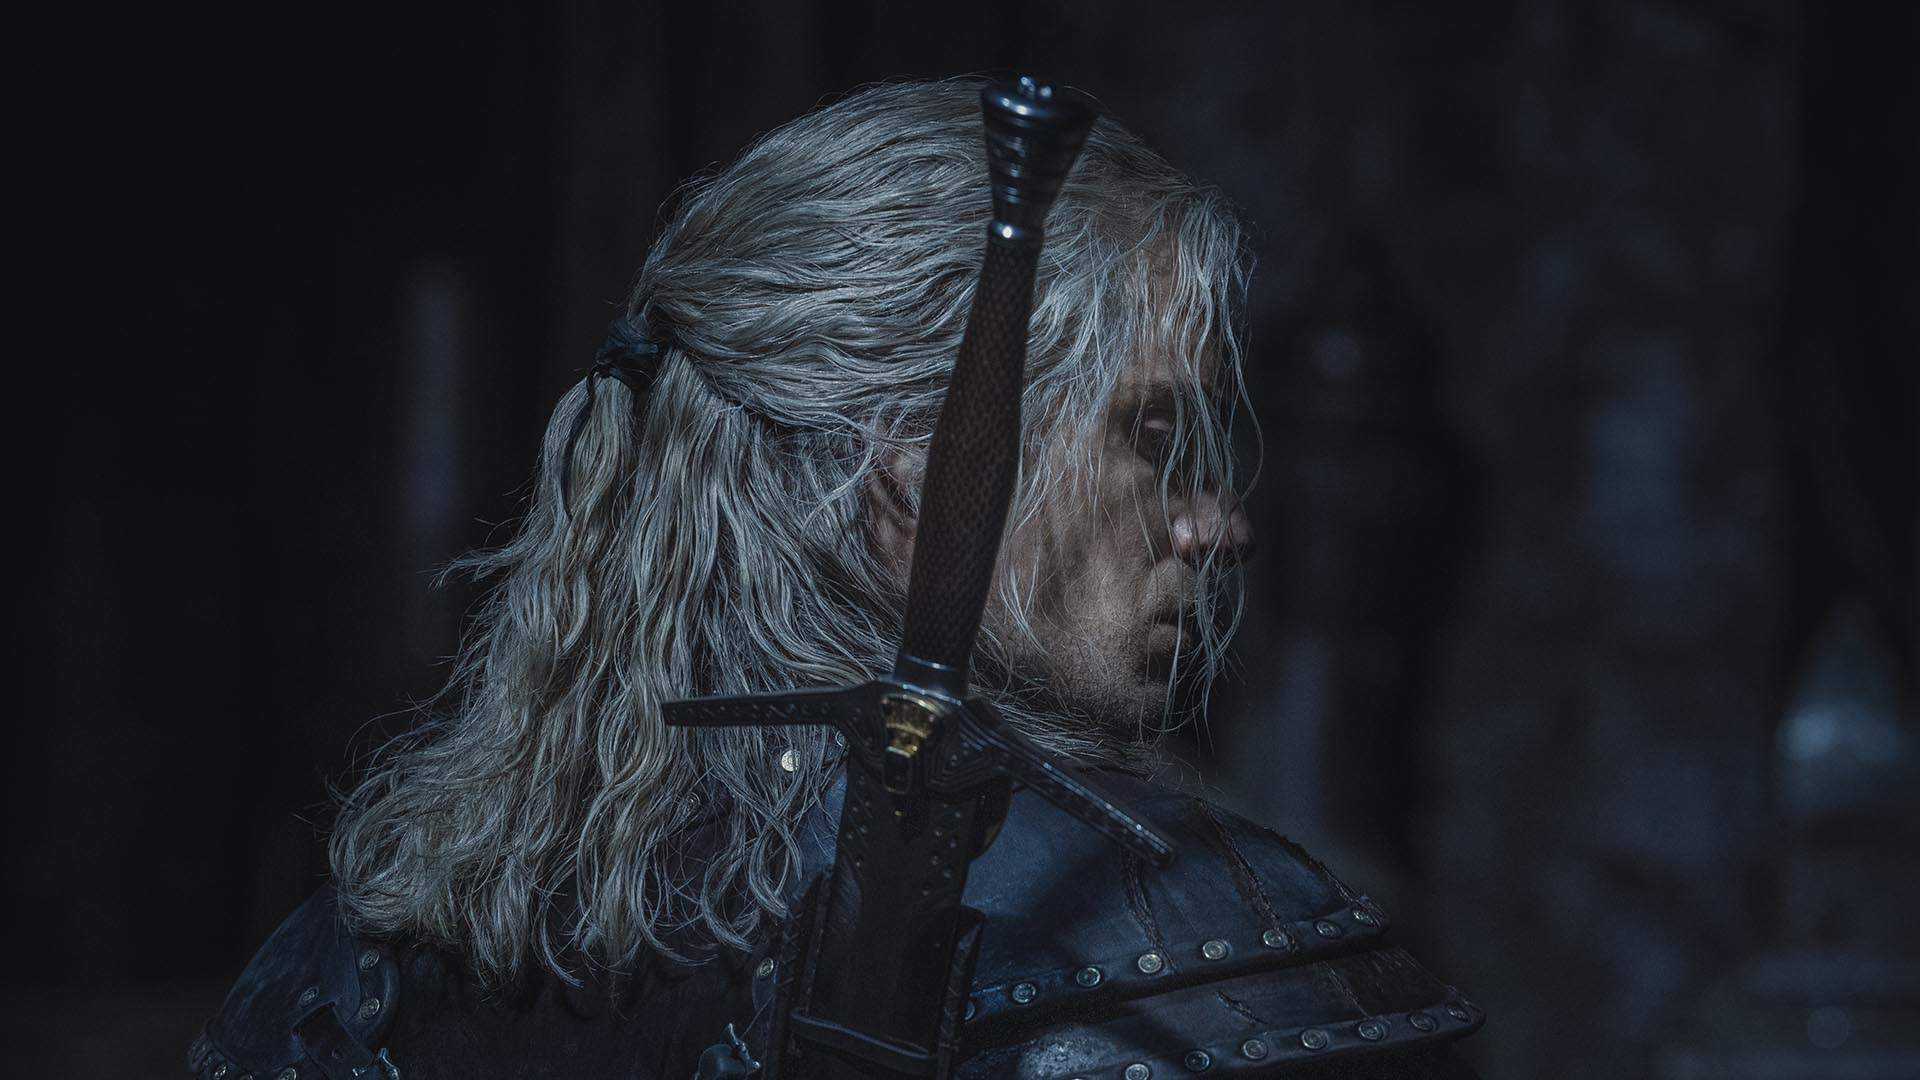 Netflix Has Renewed 'The Witcher' for a Third Season Before Its Second Season Even Streams